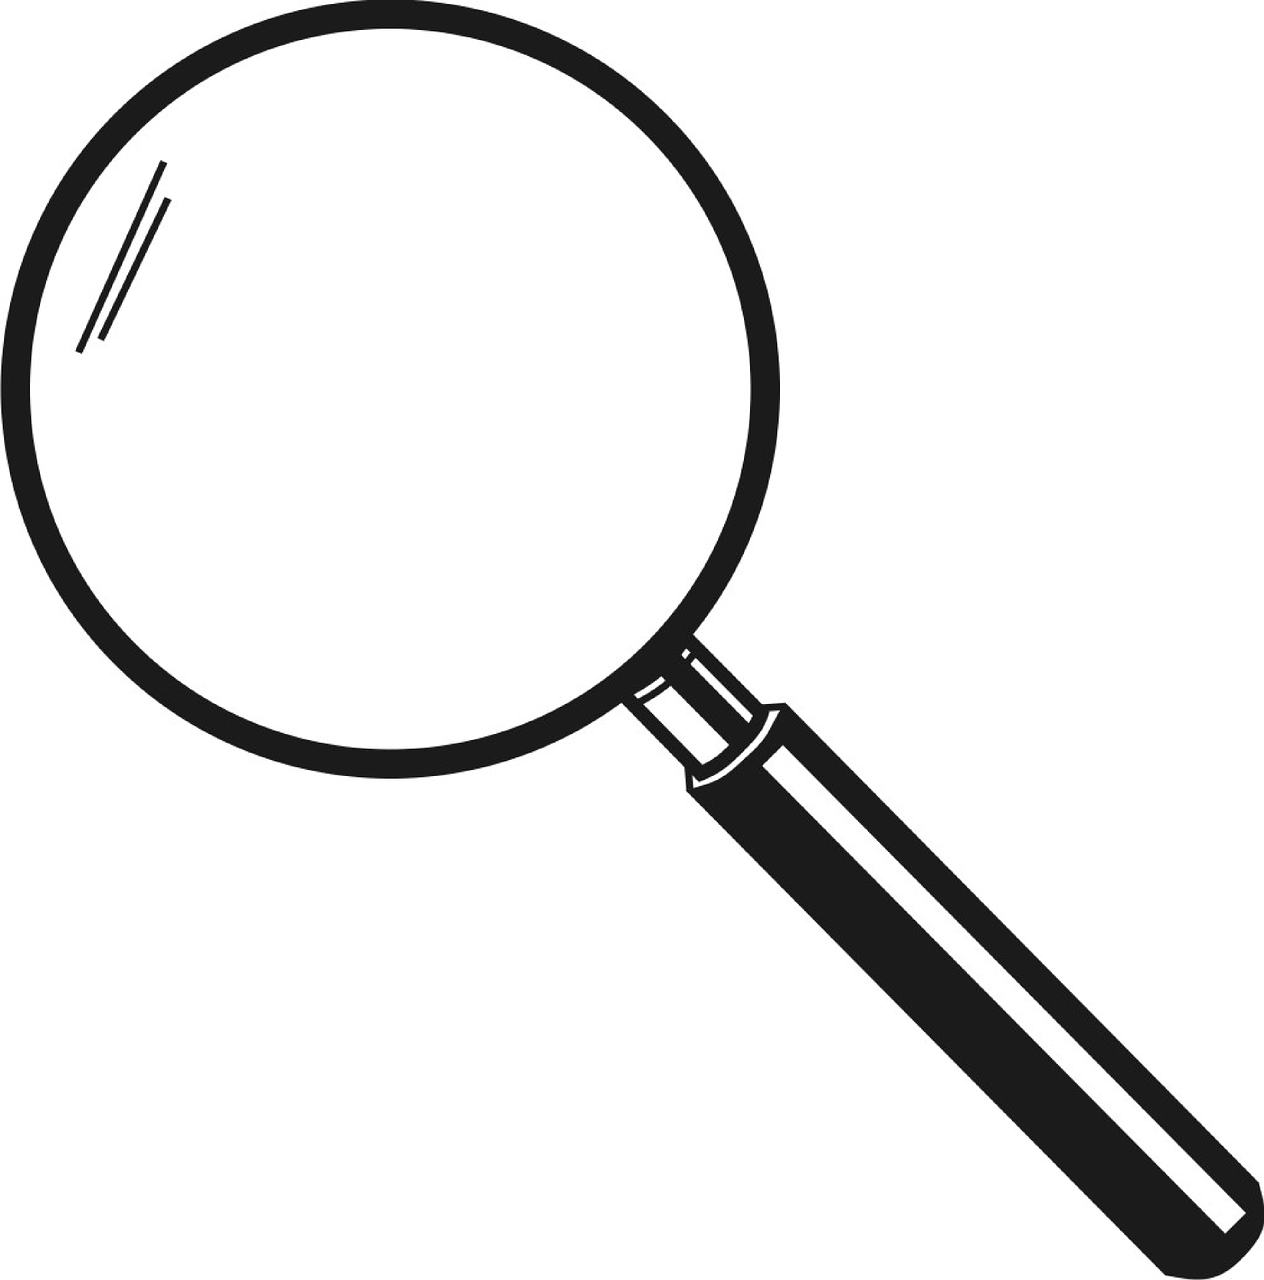 Lupe Magnifier Loupe Glass  - OpenClipart-Vectors / Pixabay